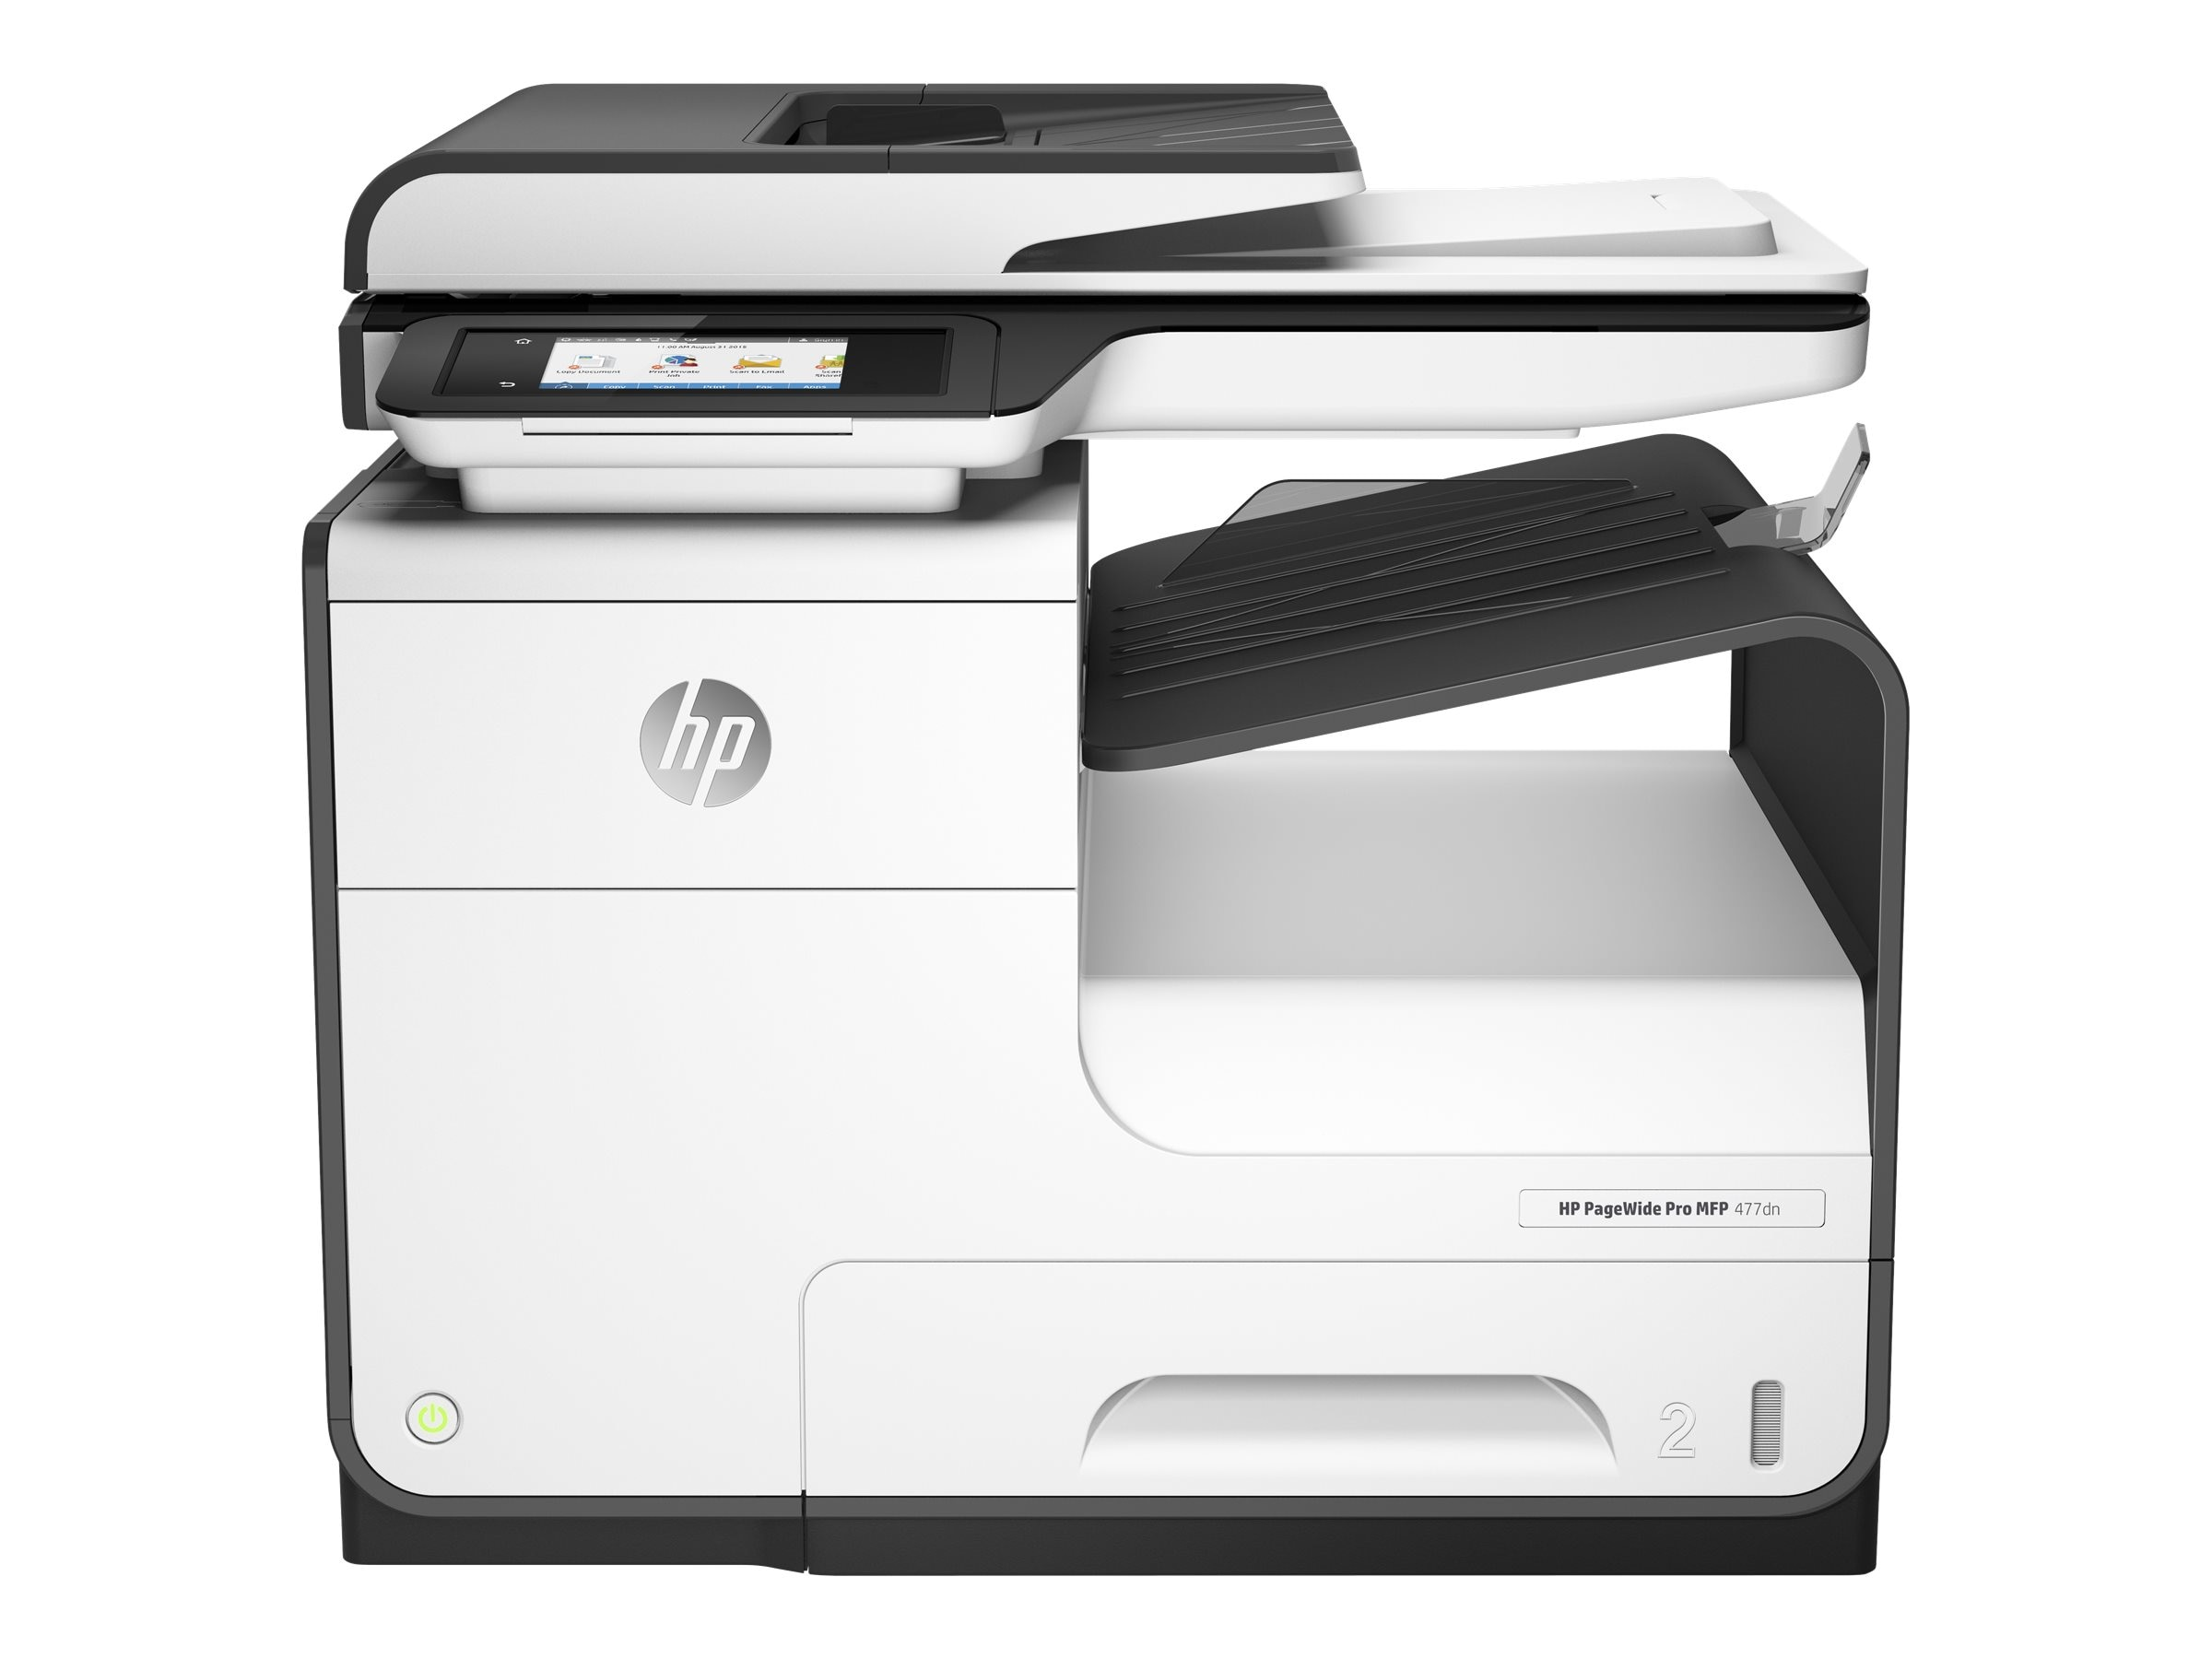 HP PageWide Pro 477dn Multifunction Printer ($699 - $70 Instant Rebate = $629 Expires 12 31 16), D3Q19A#B1H